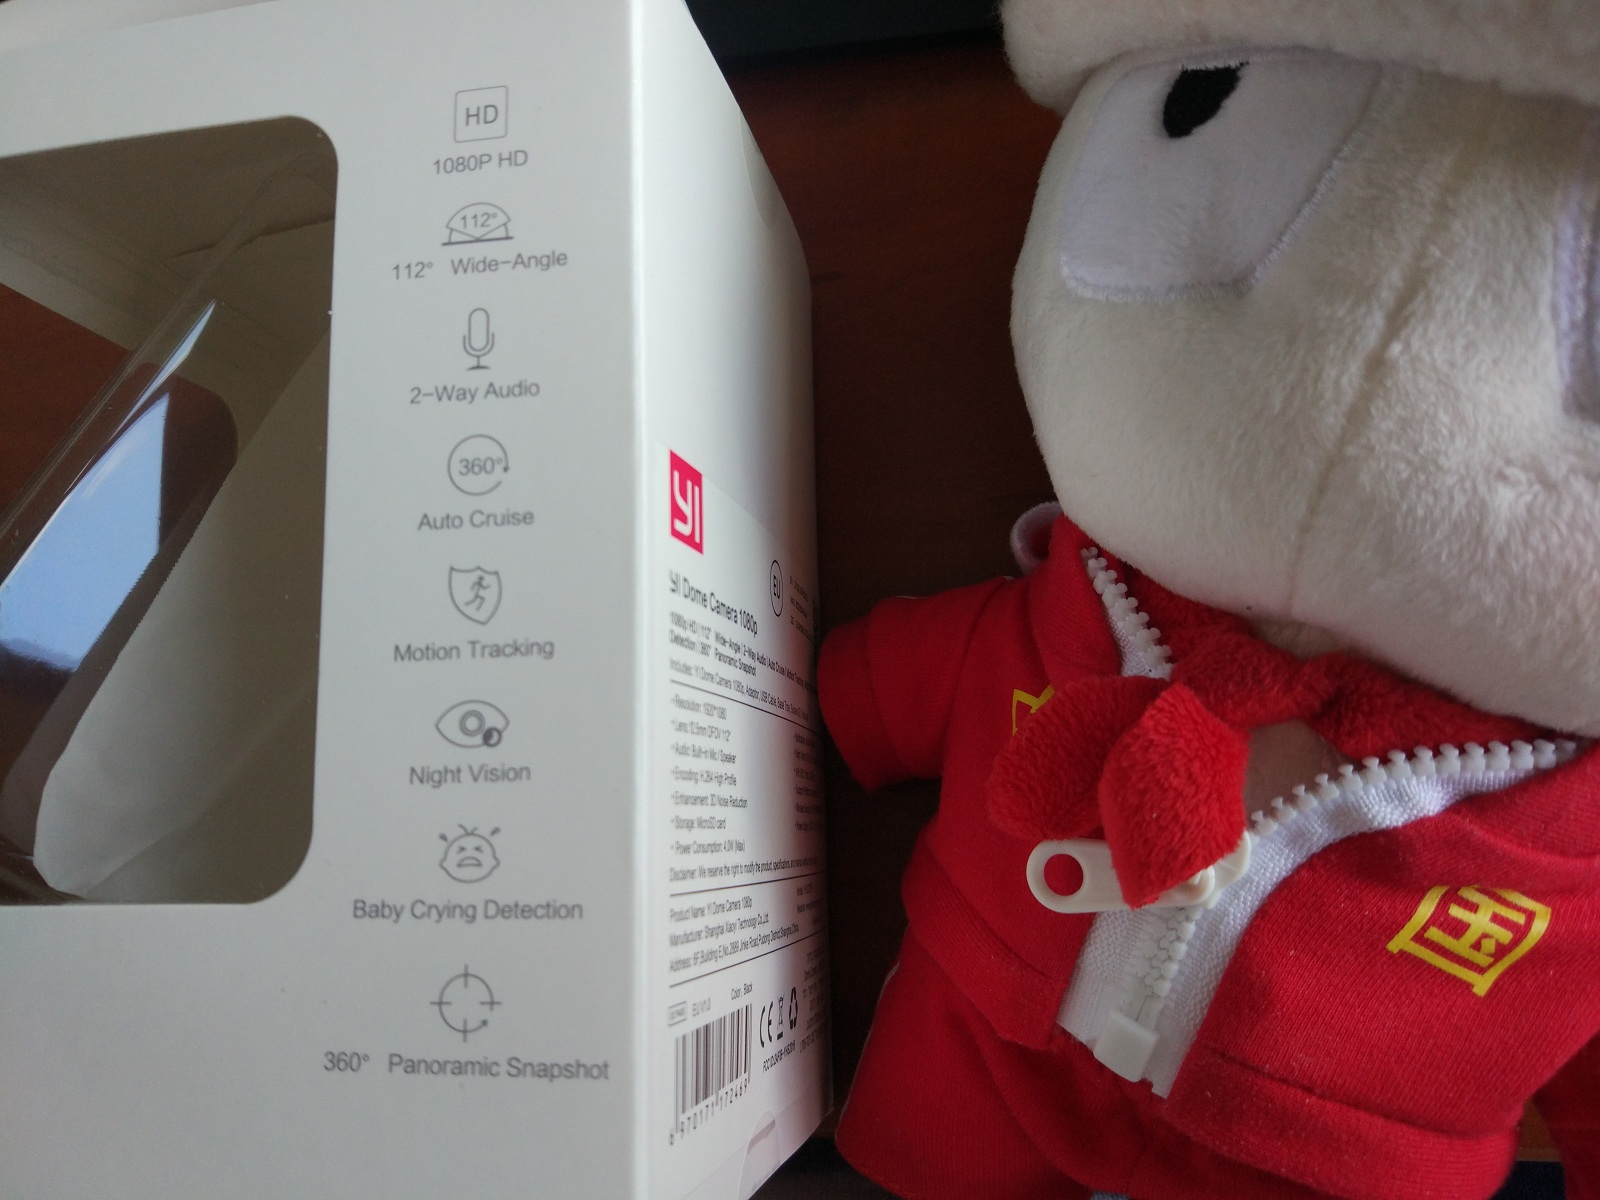 Yi 360° Home IP Camera Review - only interesting news at NIS